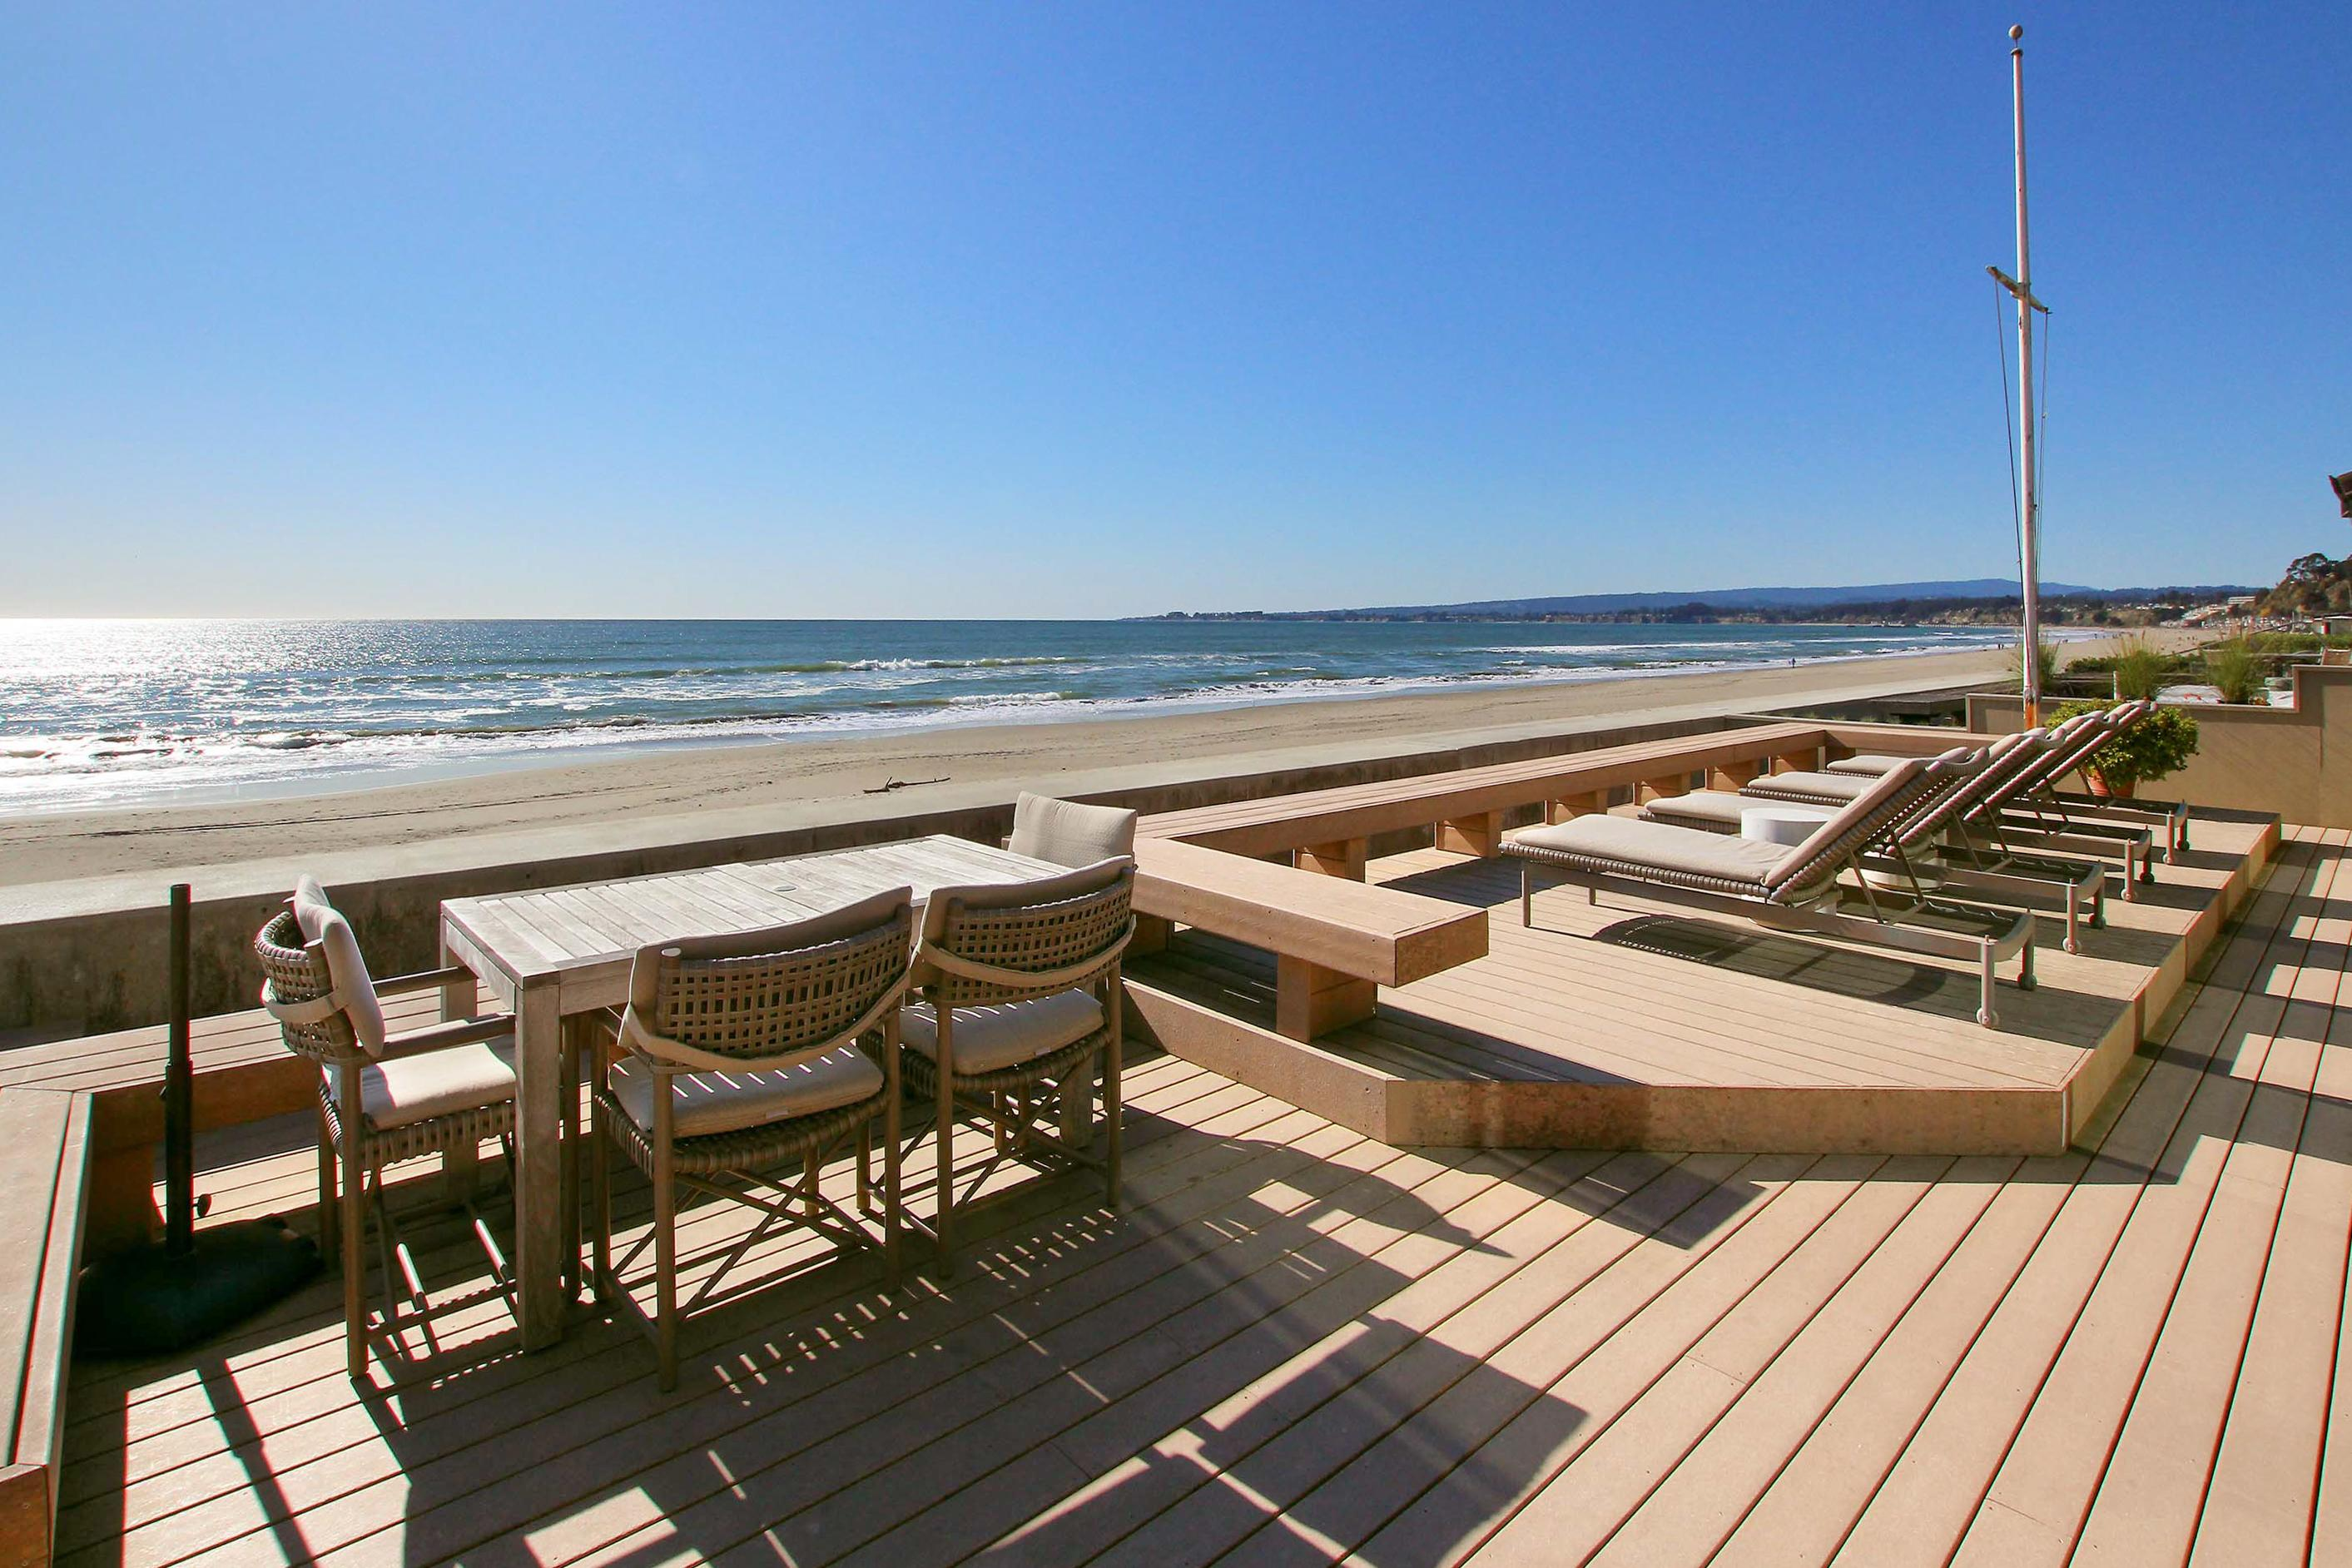 Welcome to Seascape! This incredible oceanfront home is professionally managed and maintained by TurnKey Vacation Rentals.